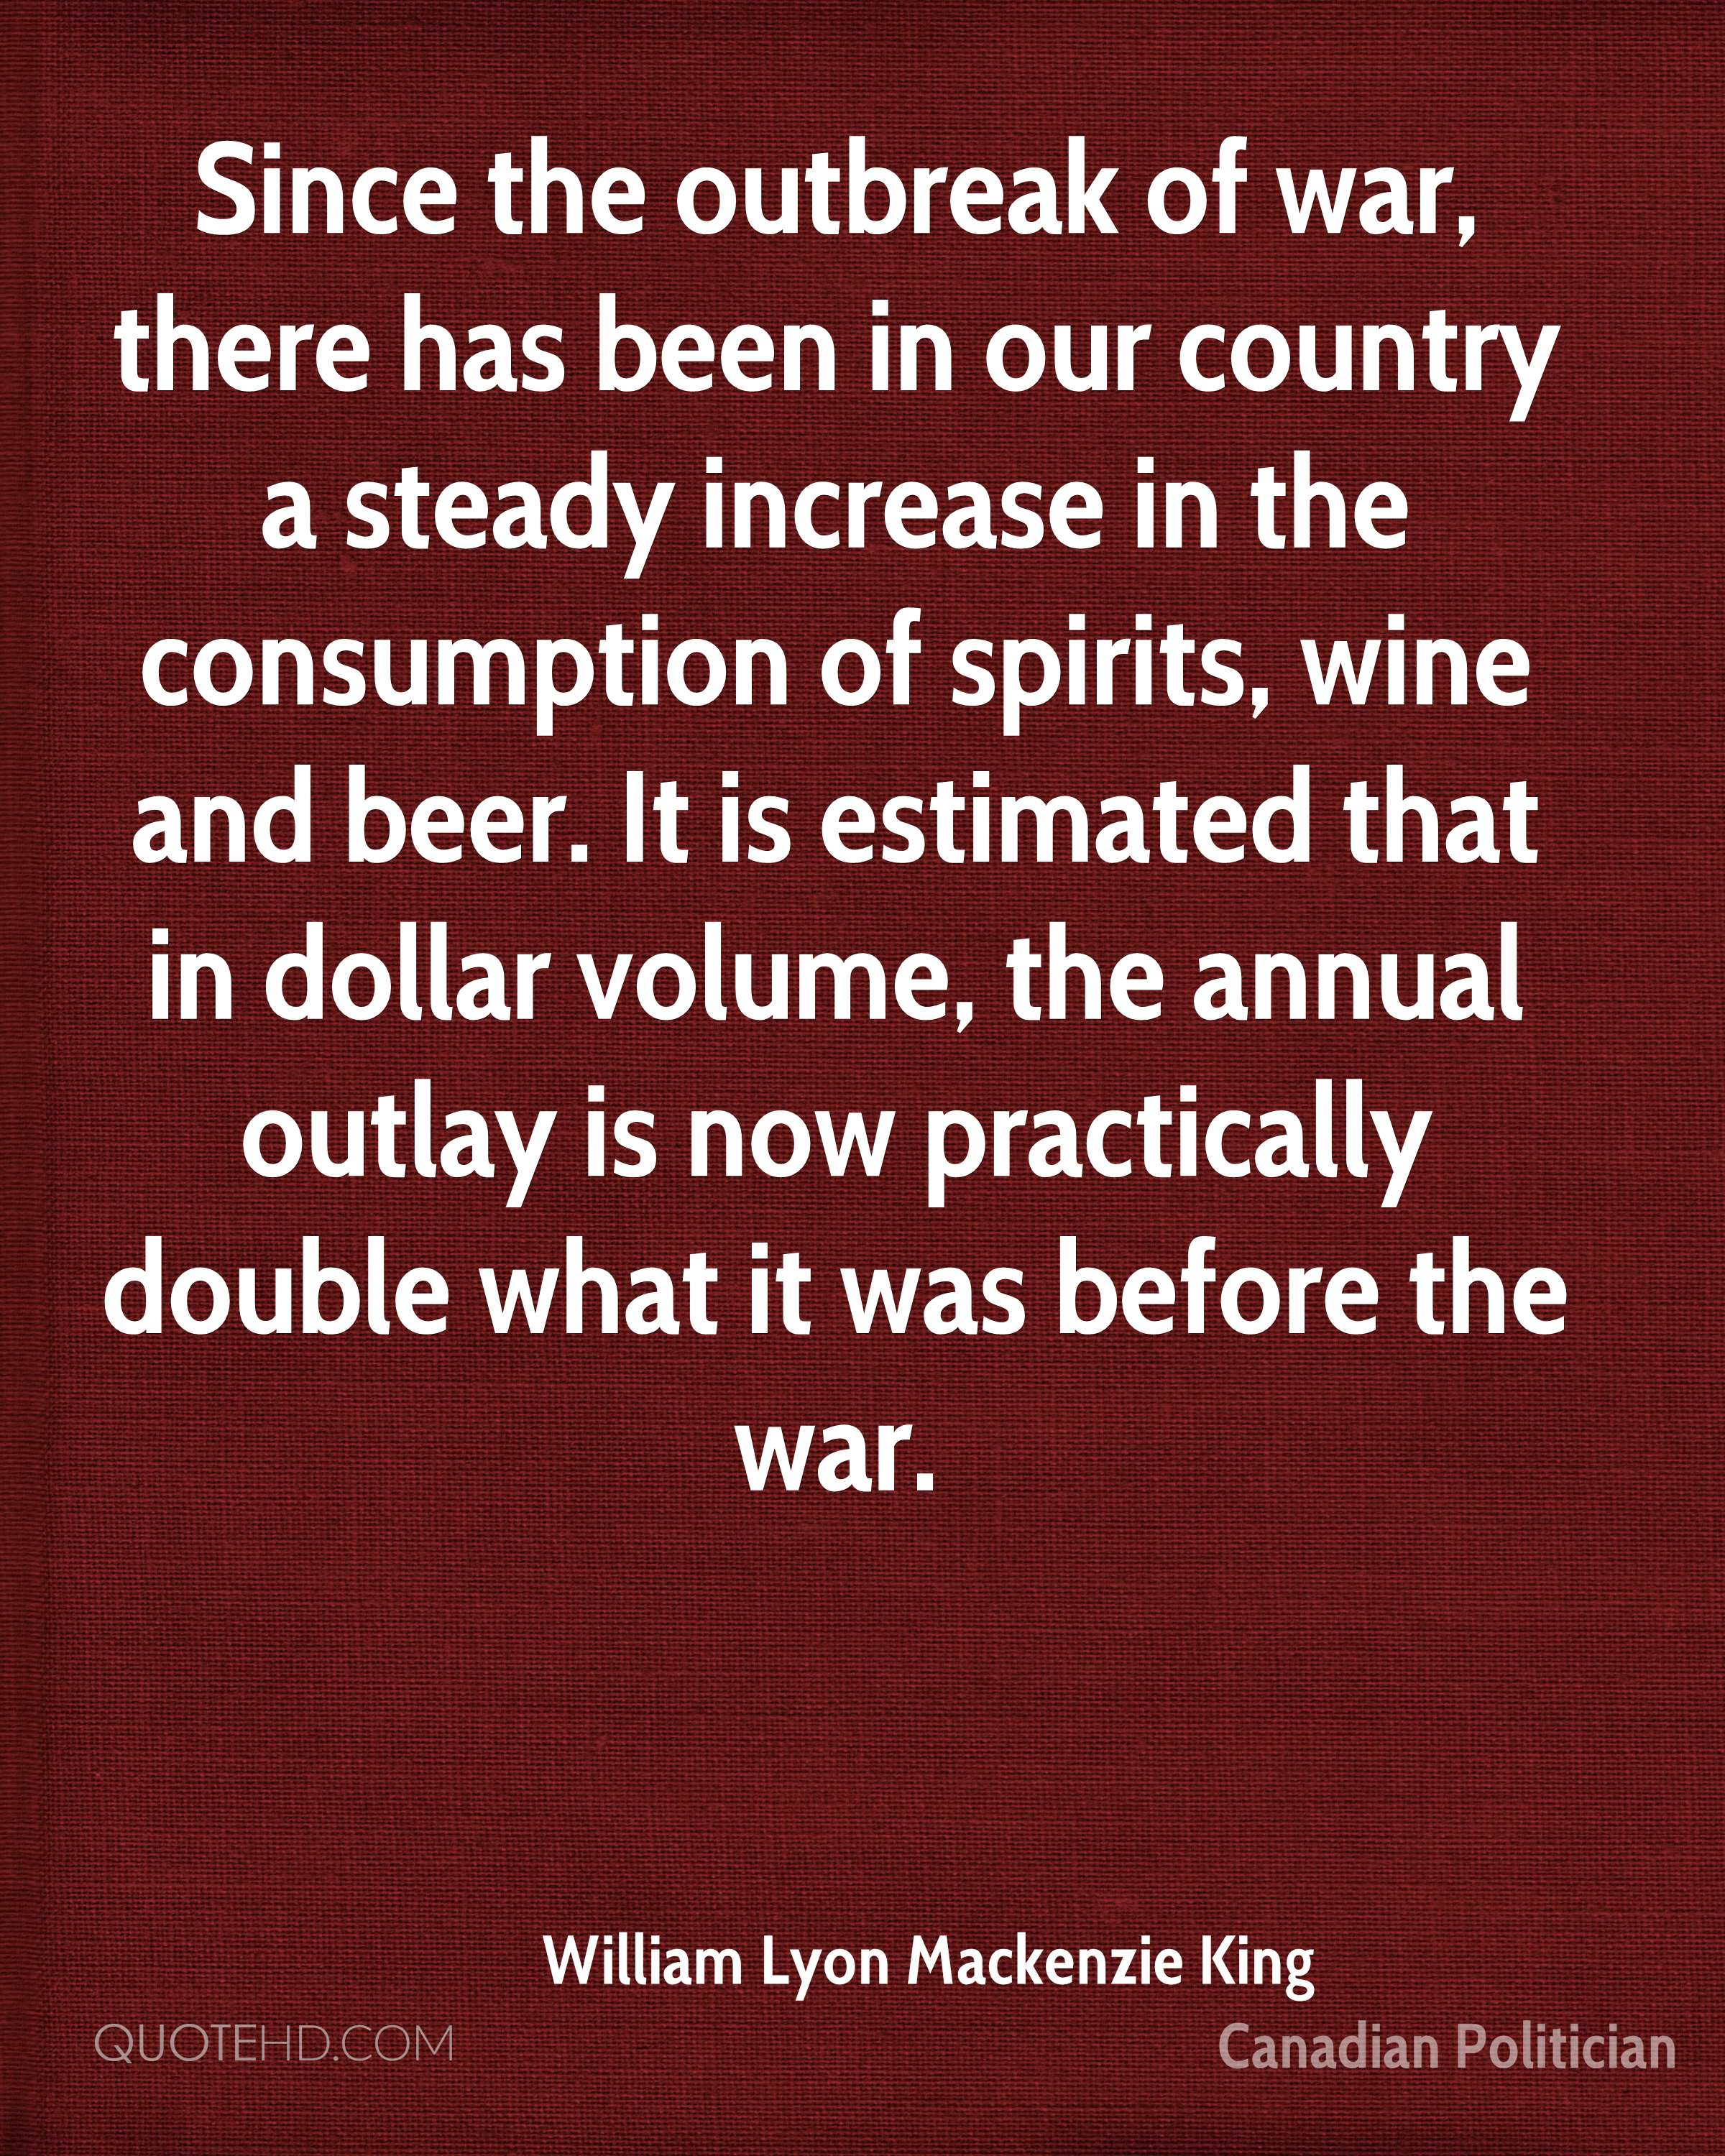 Since the outbreak of war, there has been in our country a steady increase in the consumption of spirits, wine and beer. It is estimated that in dollar volume, the annual outlay is now practically double what it was before the war.